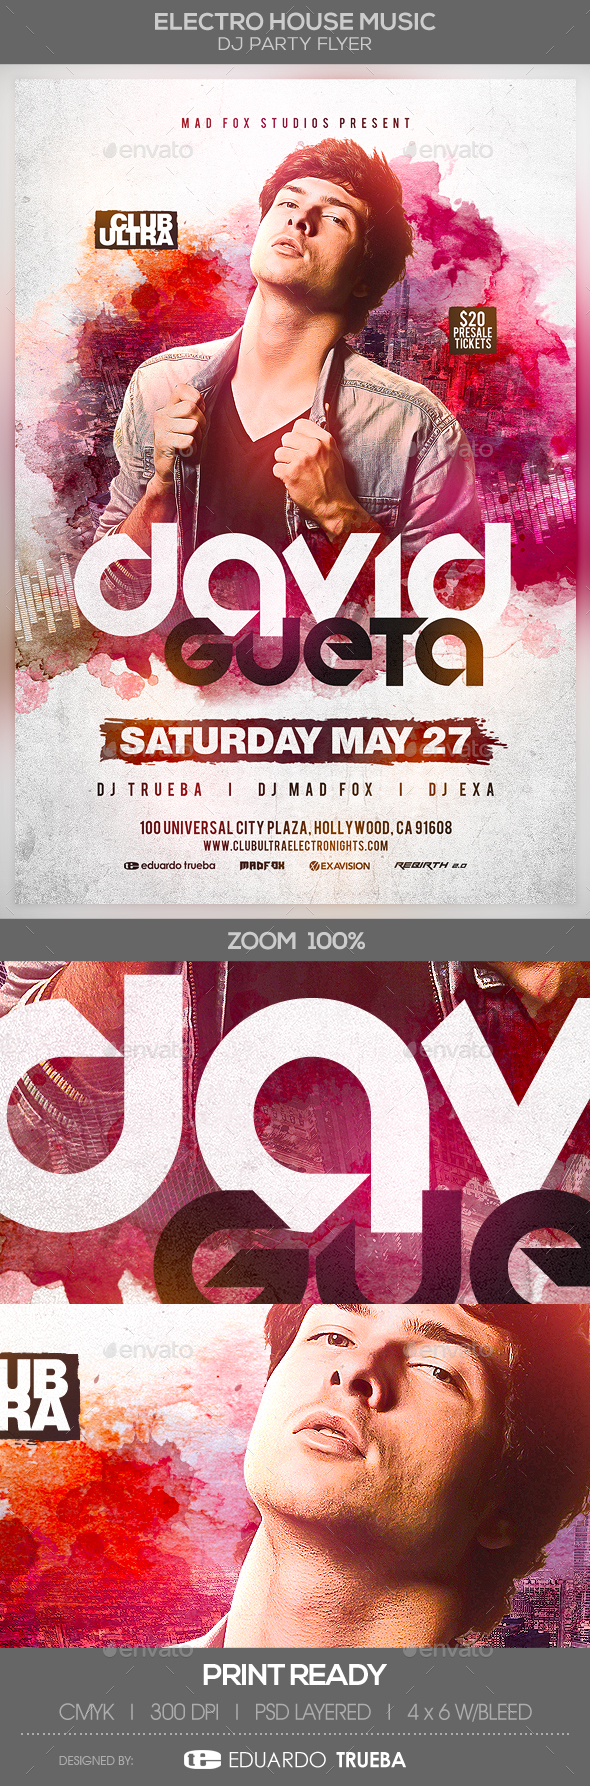 Electro House Music Dj Party Flyer - Clubs & Parties Events